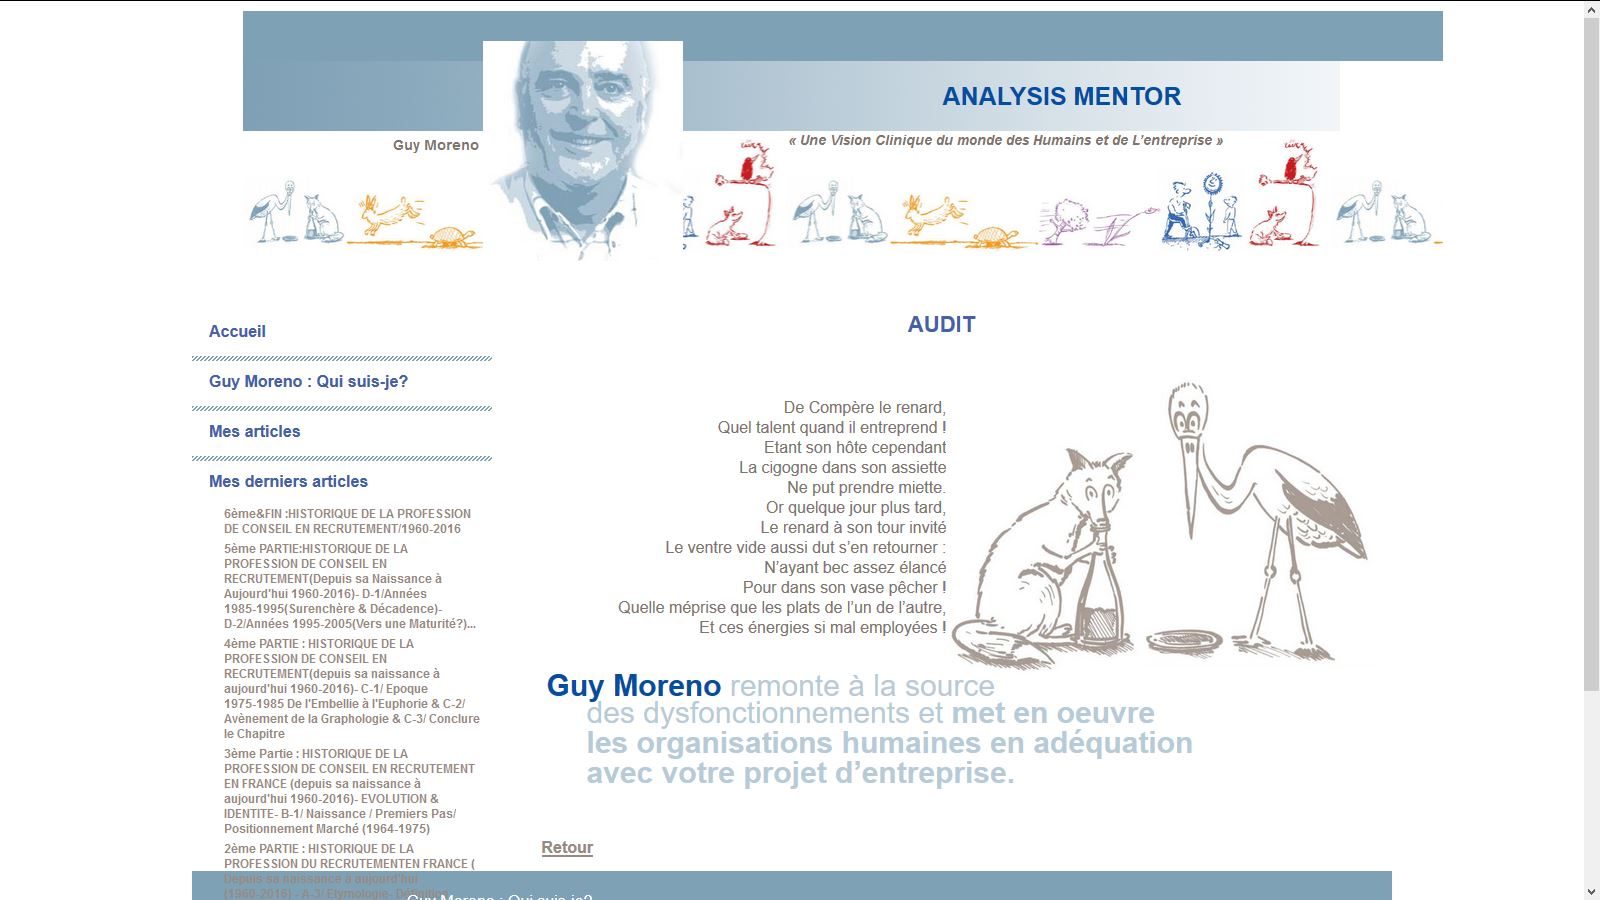 <a target='_blank' href='http://analysis-mentor.com/'>Analysis Mentor</a>